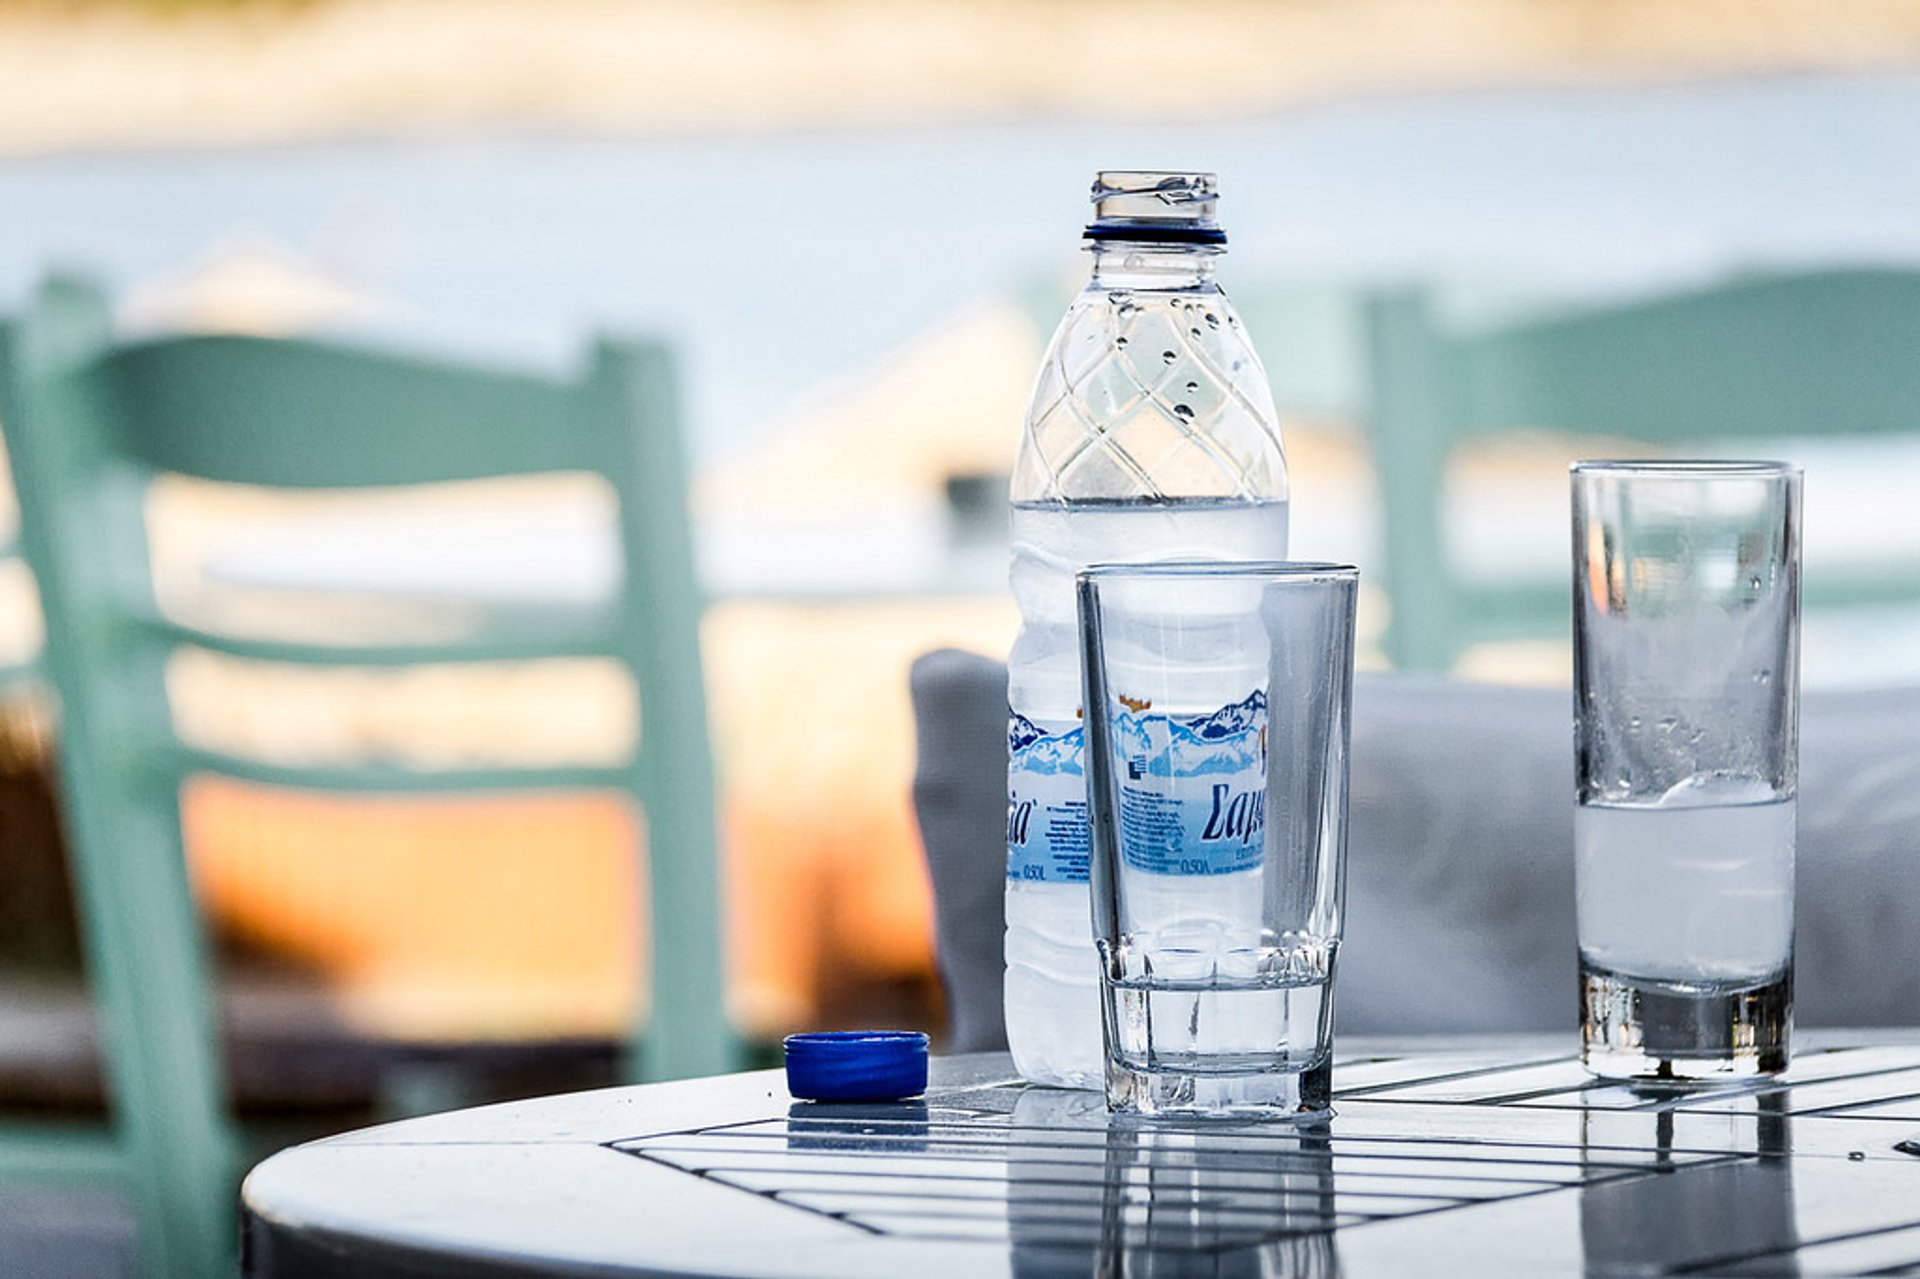 Ouzo & Tsipouro Preparation in Greece 2020 - Best Time